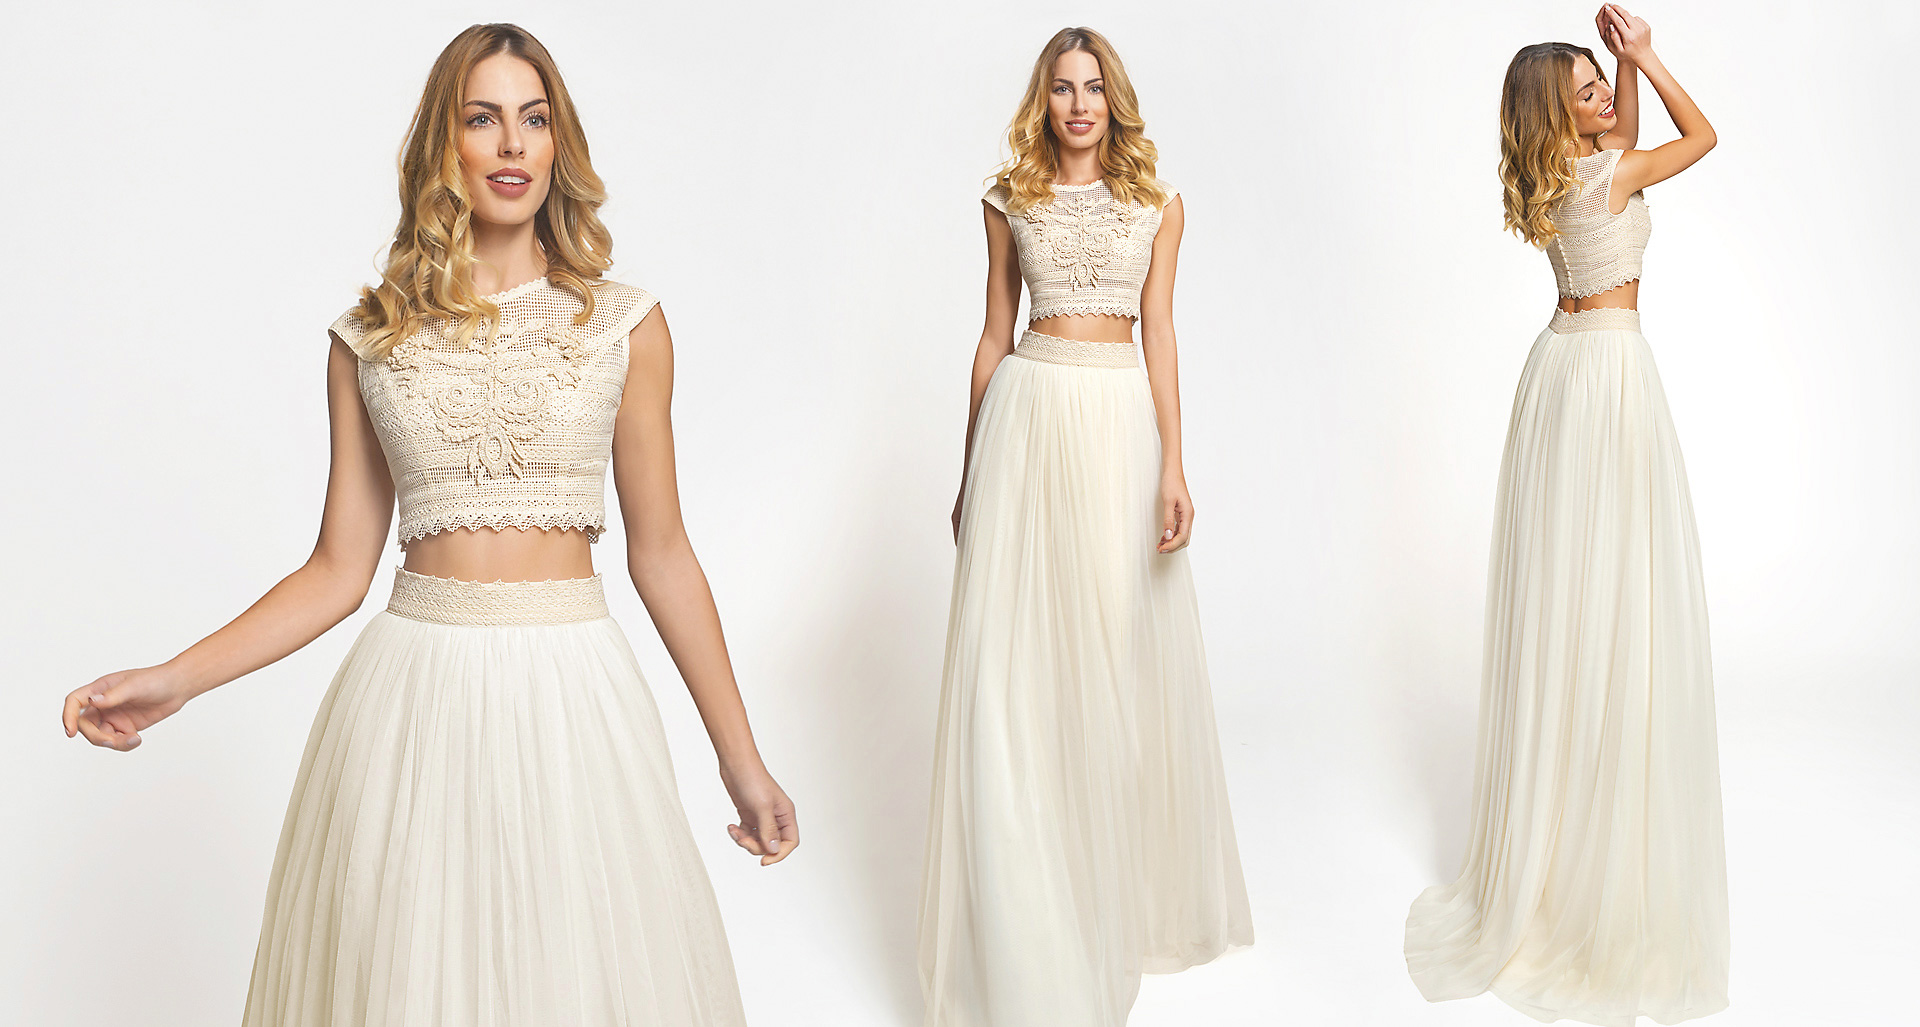 Hera wedding dress from  Hellenic Vintage Crop Top Collection